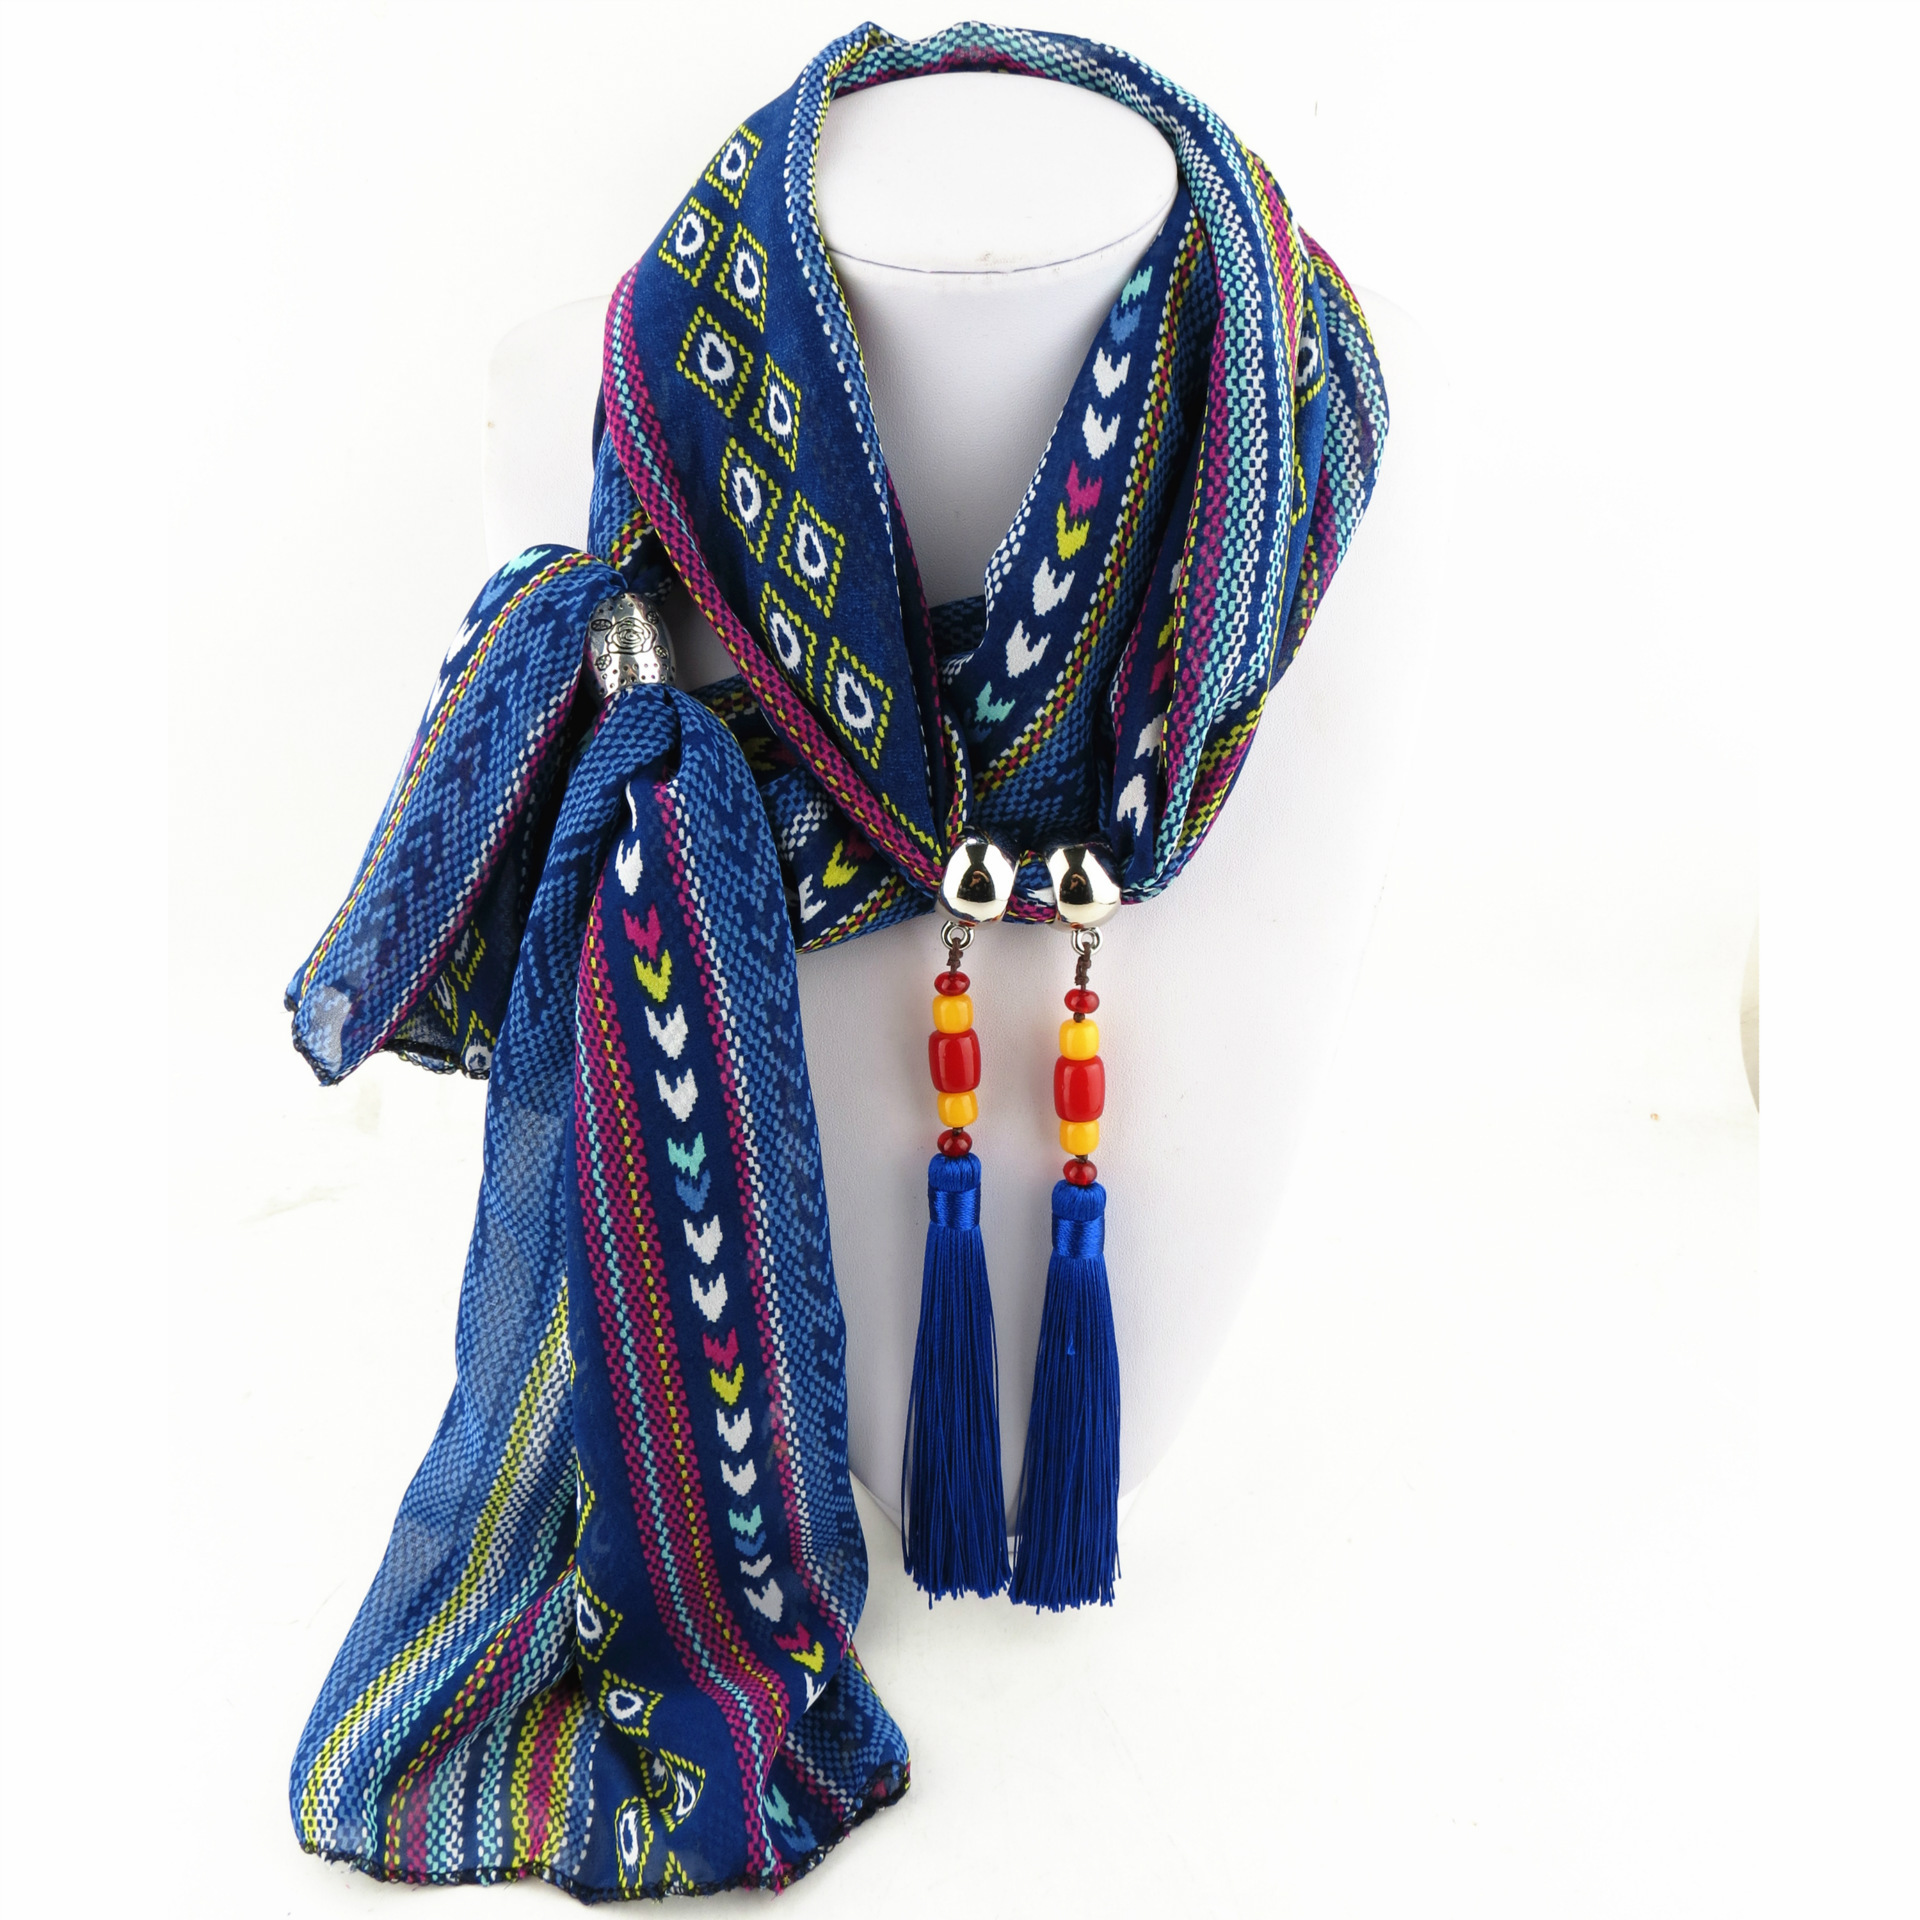 Ethnic style striped satin ornaments pendant scarf necklace printed chiffon cloth with tassel decorative